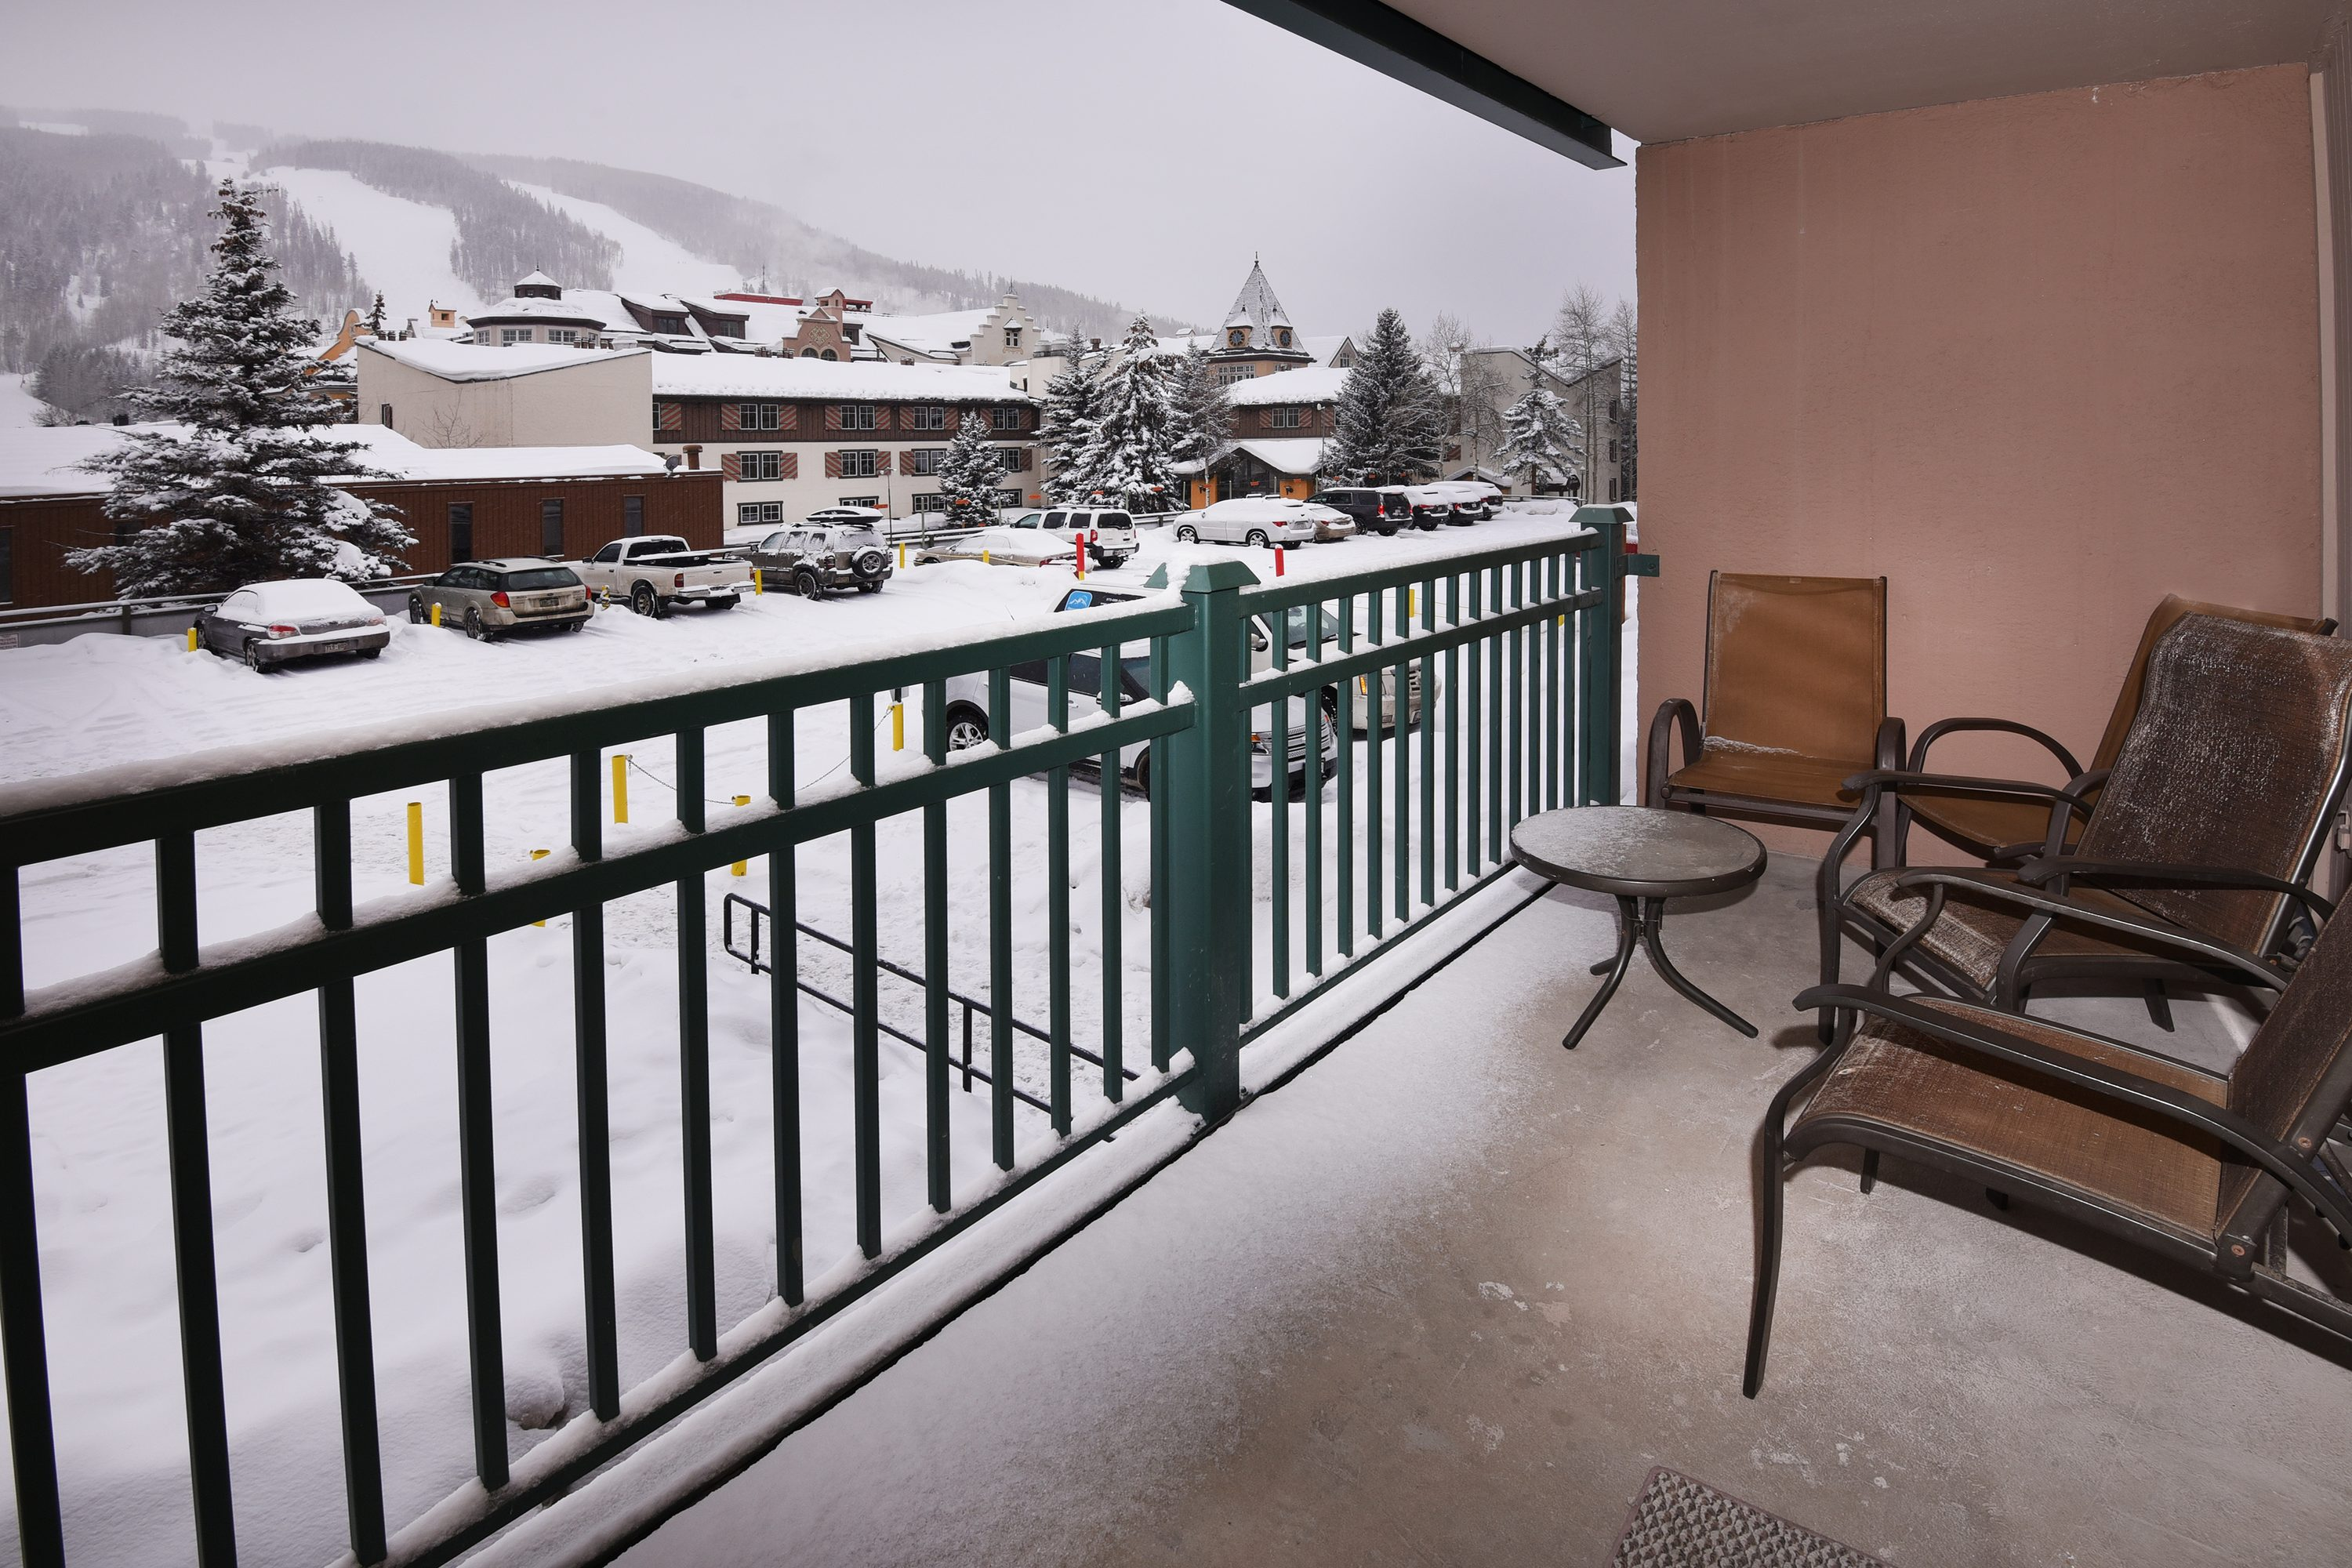 2 Bedroom Easy Walk To Slopes Slope Views Amp Hot Tubs